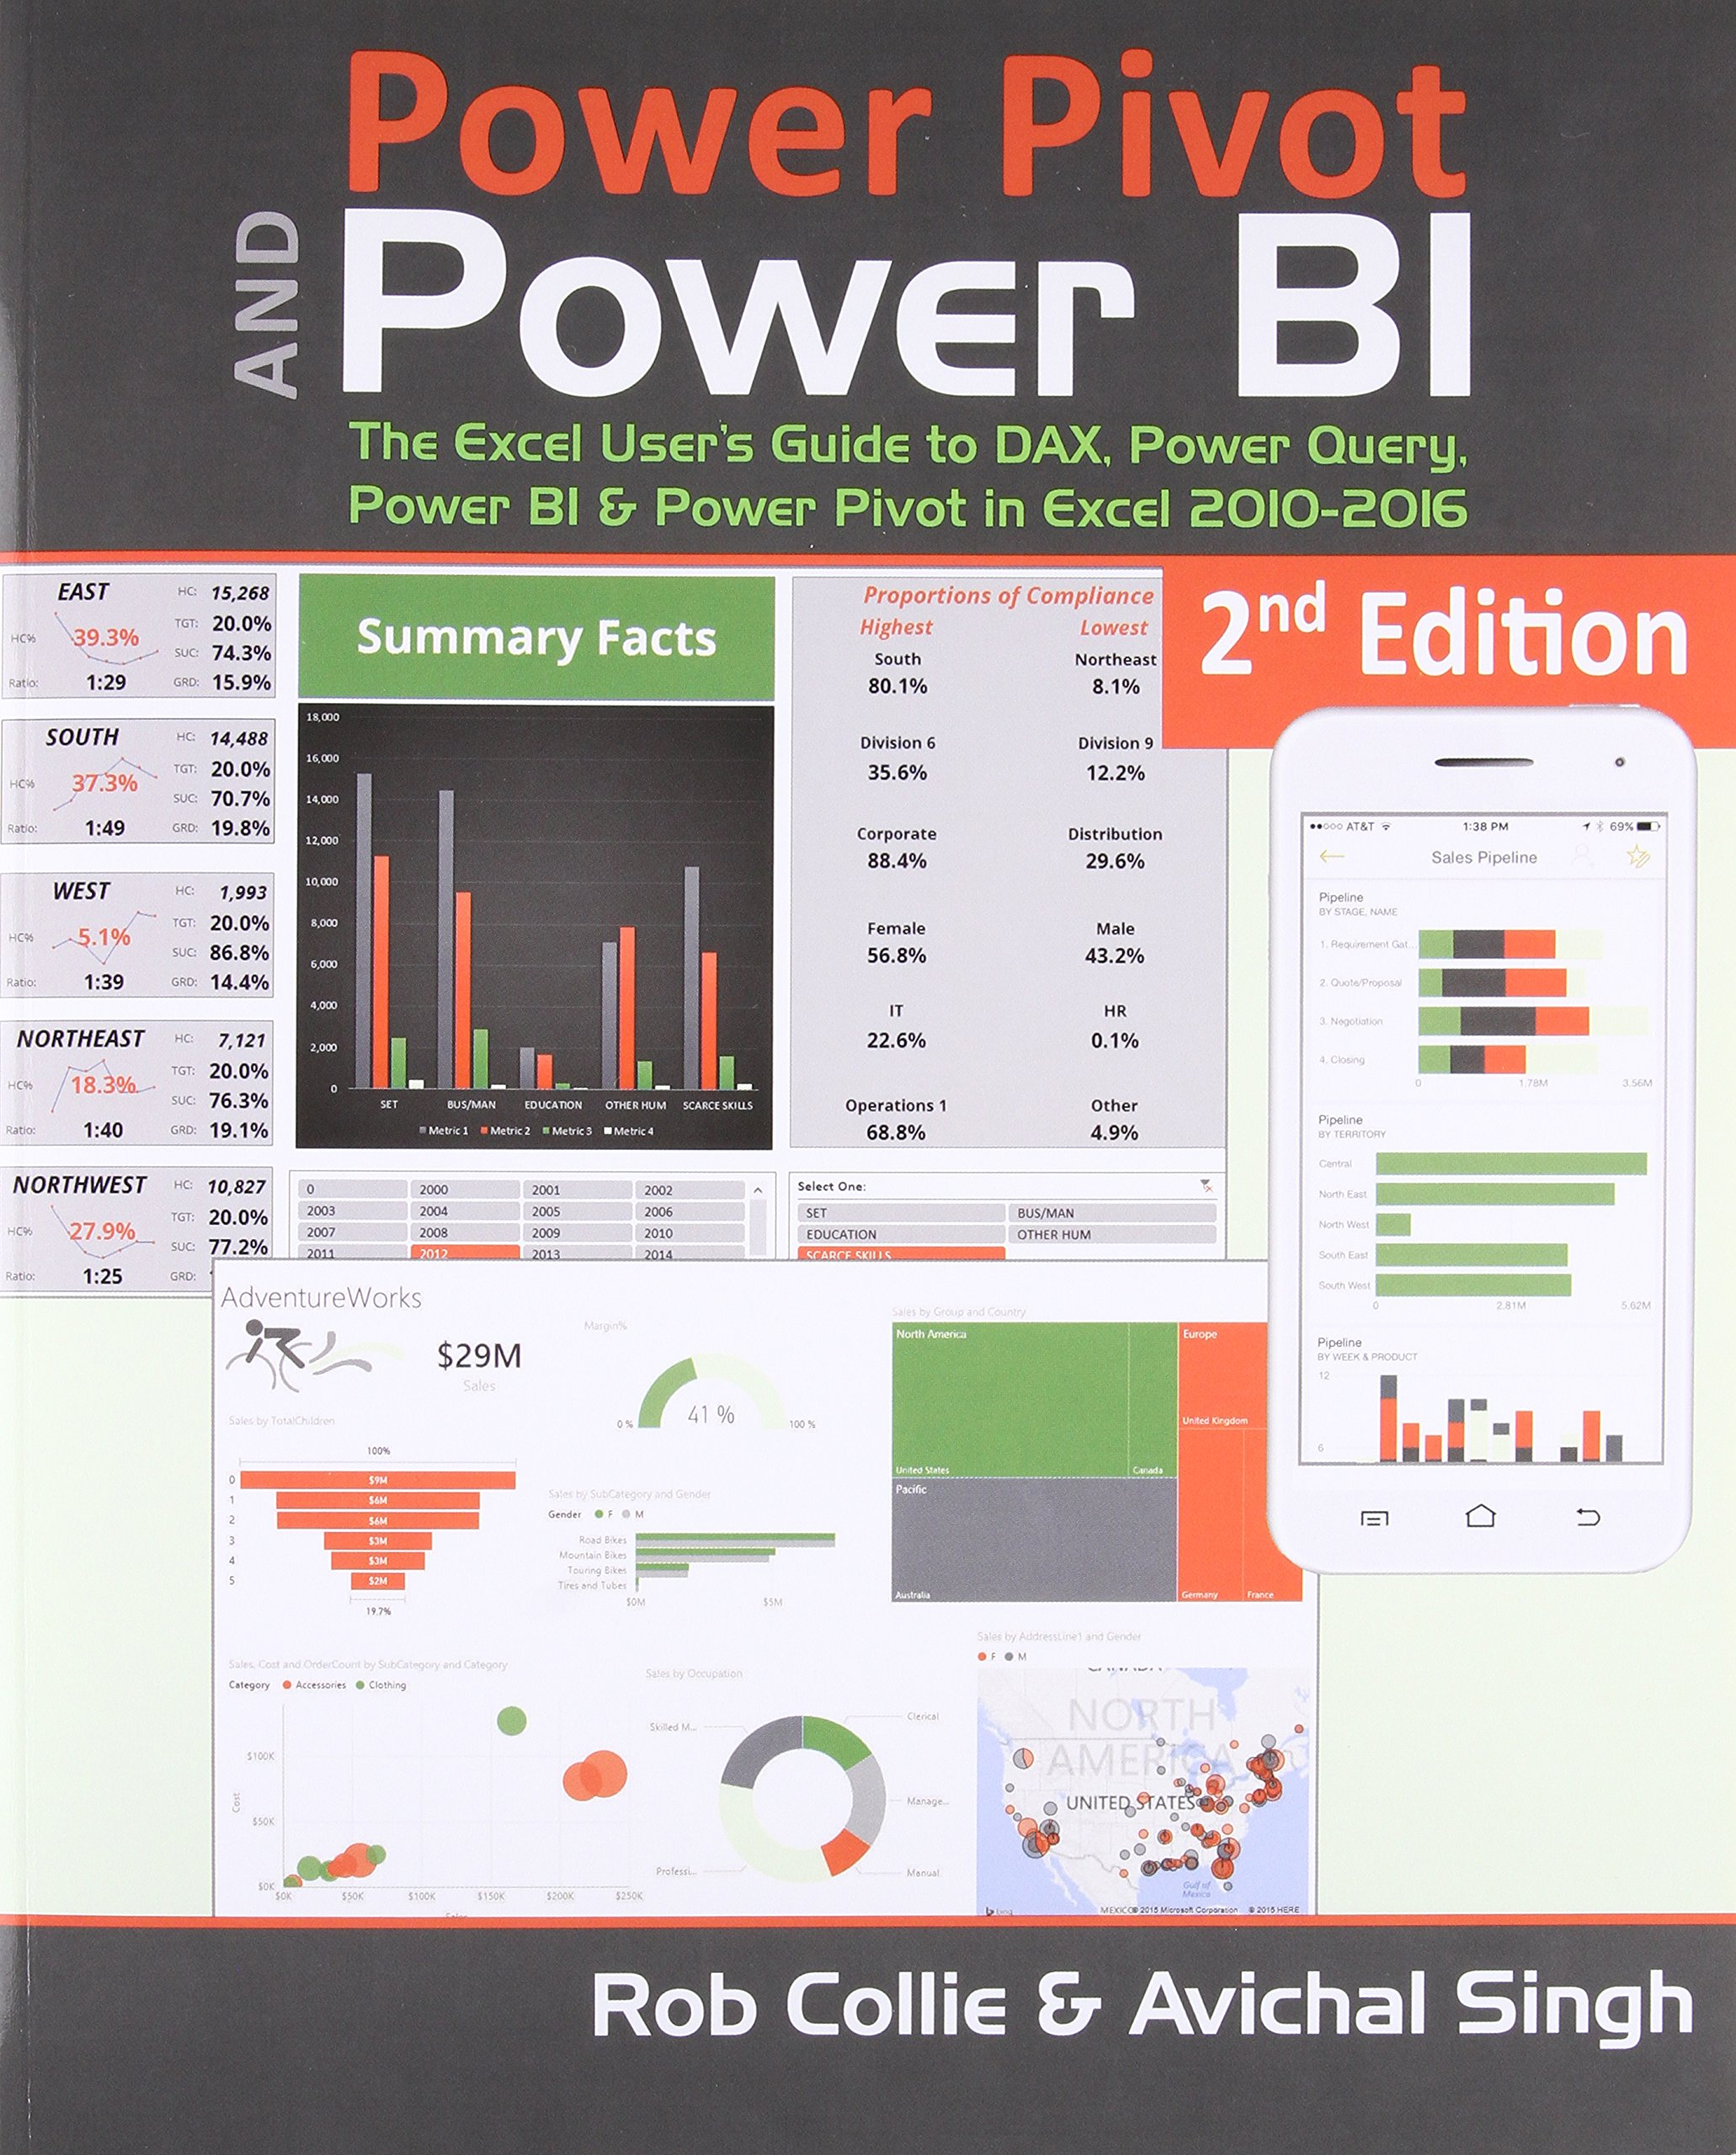 For collie formulas rob pdf powerpivot dax